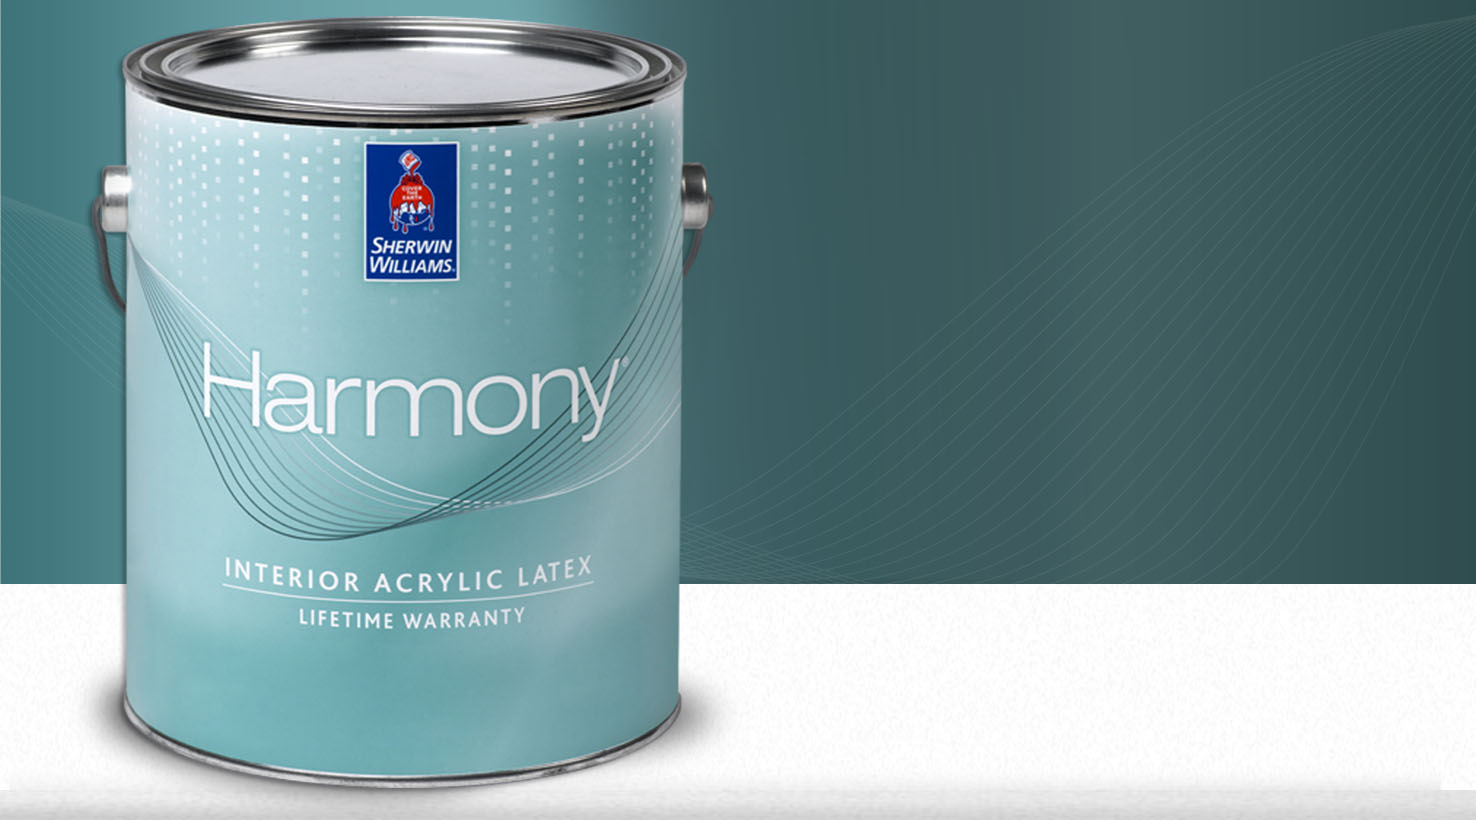 Sherwin williams interior super paint msds www - Superpaint exterior acrylic latex paint ...